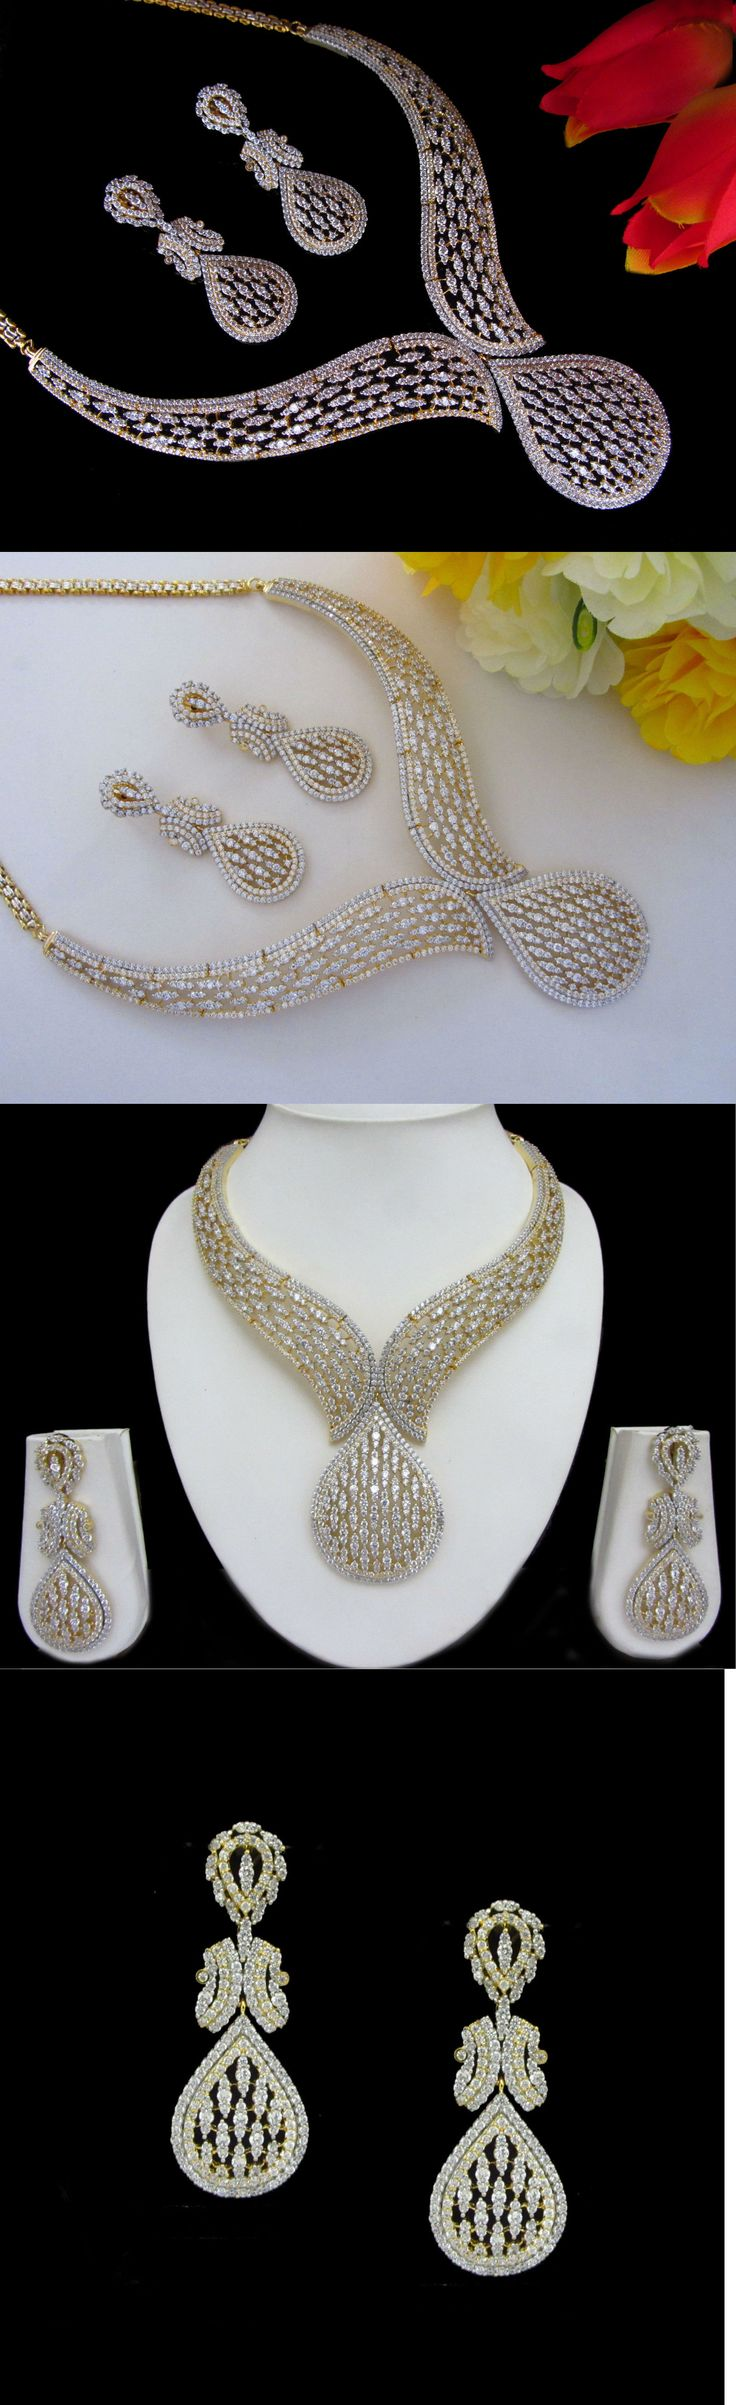 Sets 98513: Cz Ad Indian Necklace Bollywood Famous Ethnic Gold And Silver Swam Jewelry Set 01 -> BUY IT NOW ONLY: $69.99 on eBay!